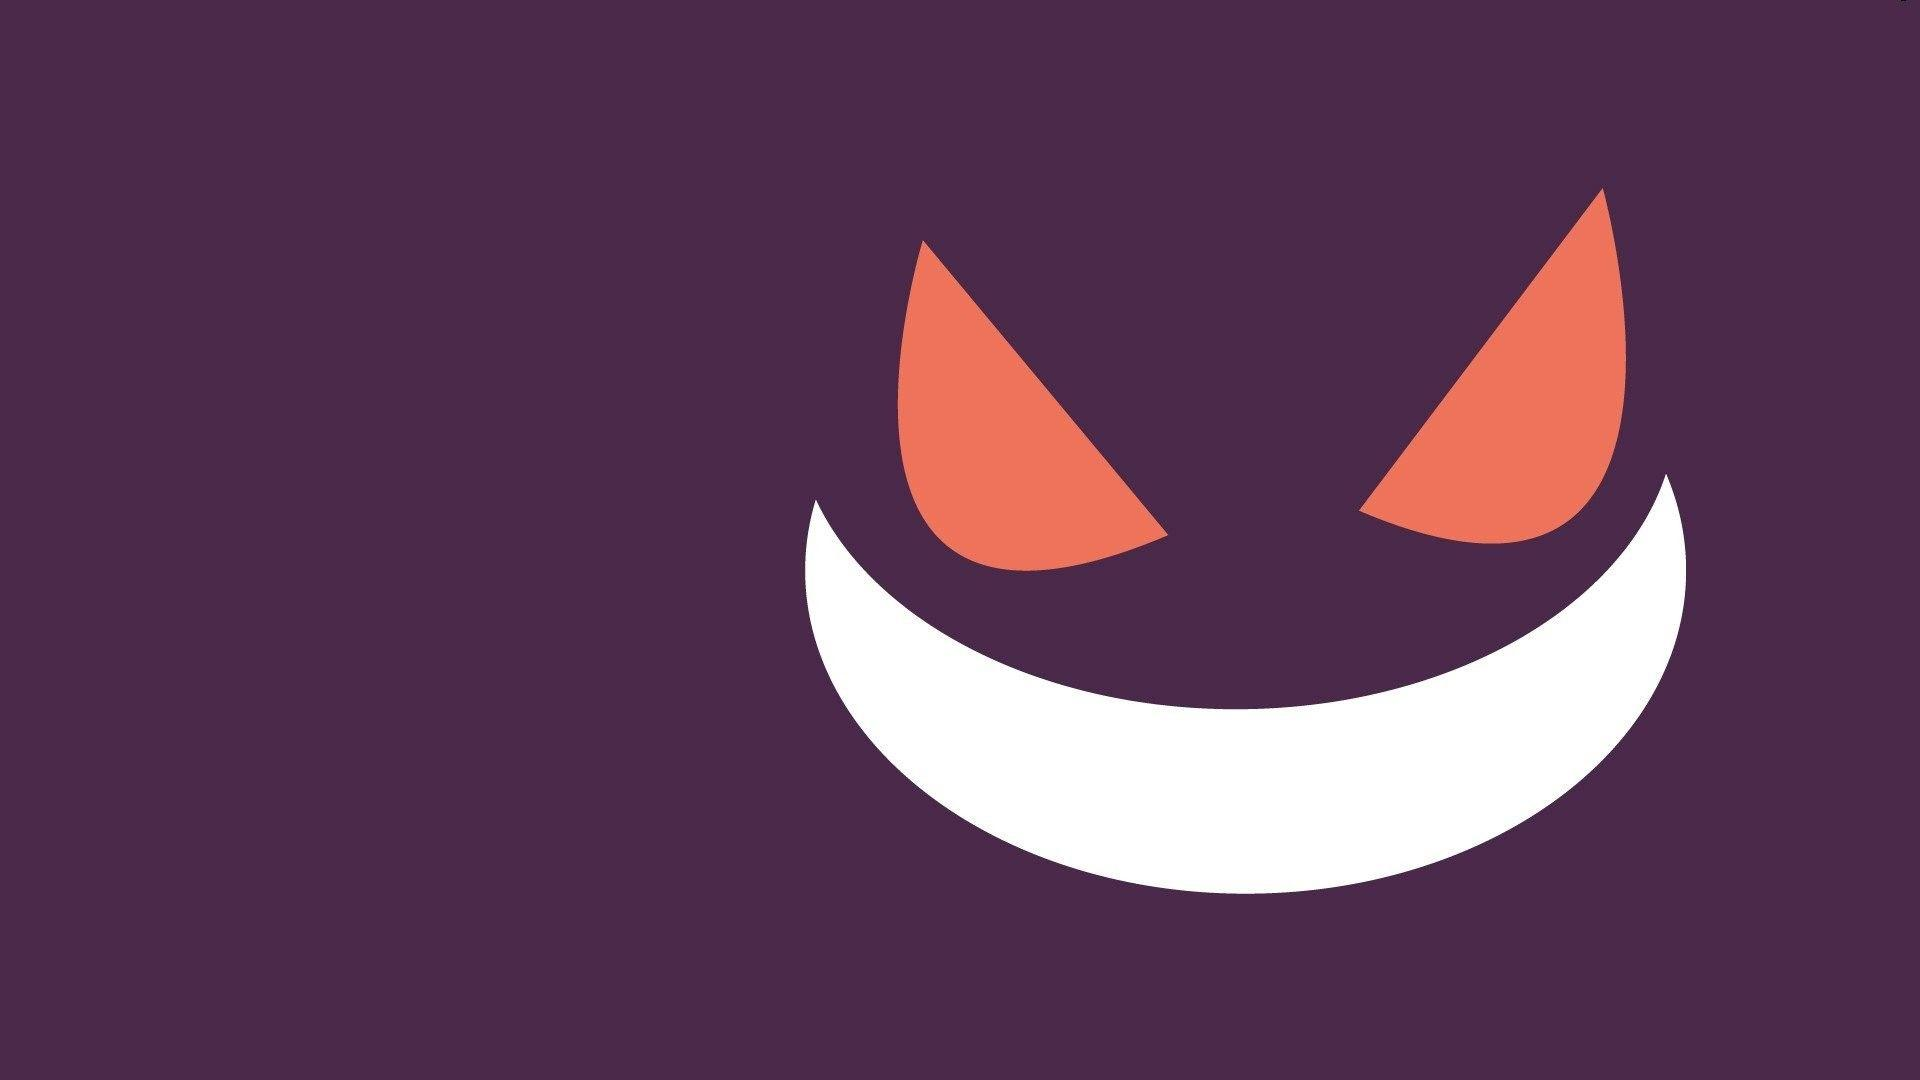 Gengar wallpaper 75+ - Page 3 of 3 - WallpaperData.com - 4K ...